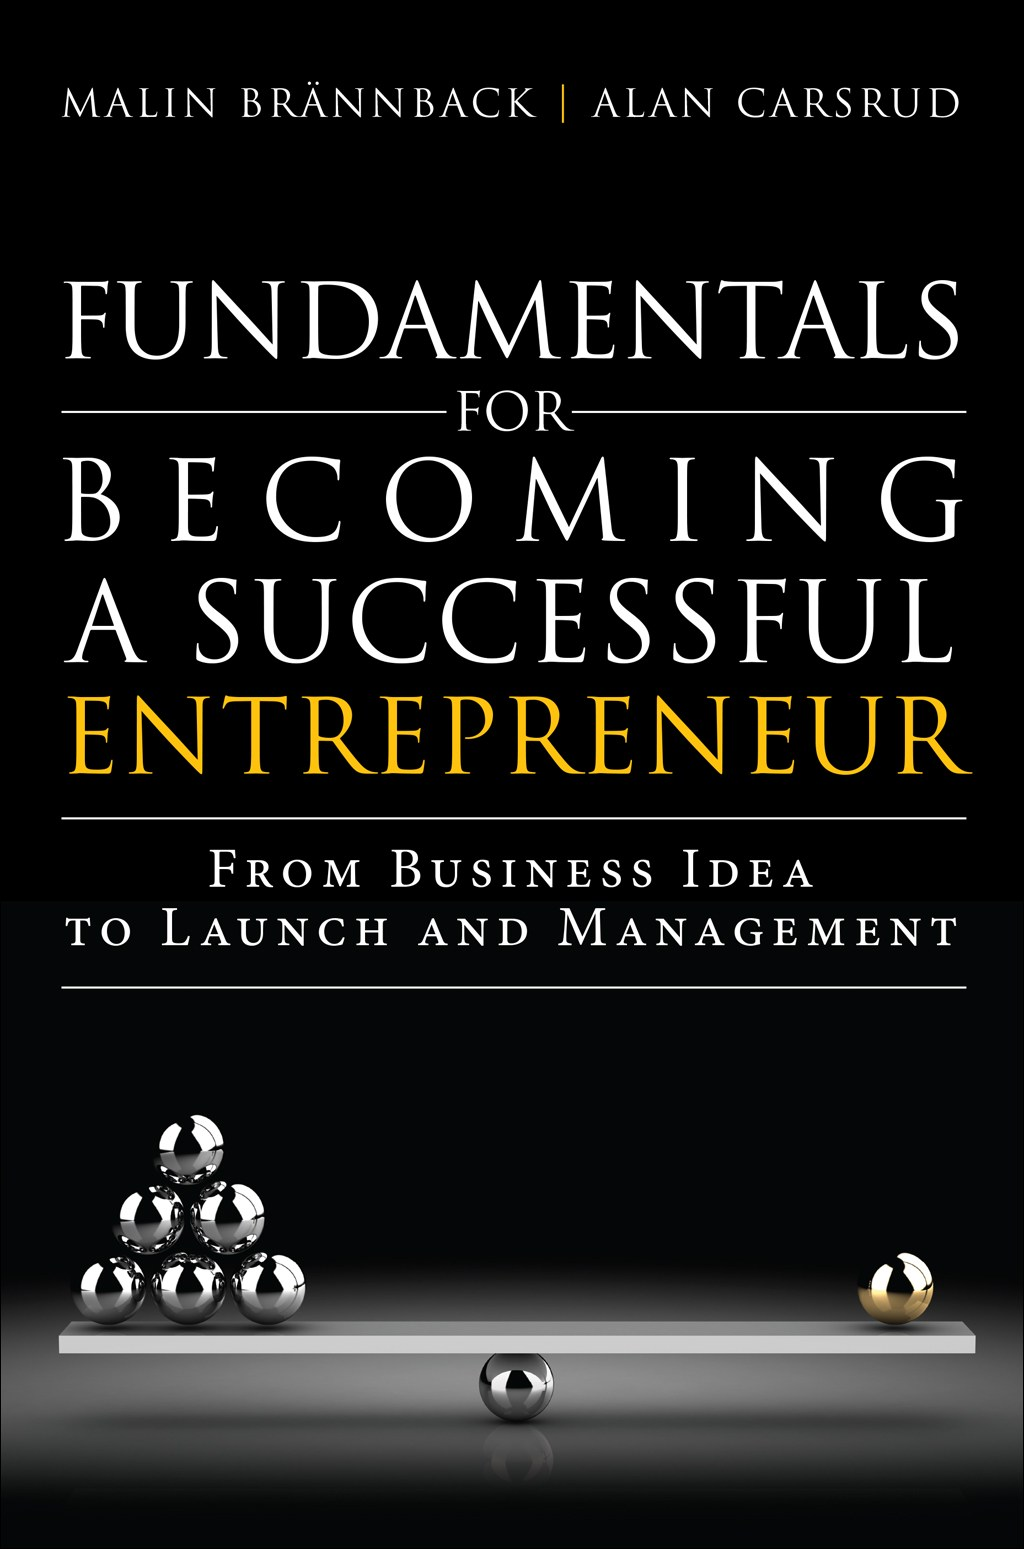 Fundamentals for Becoming a Successful Entrepreneur: From Business Idea to Launch and Management